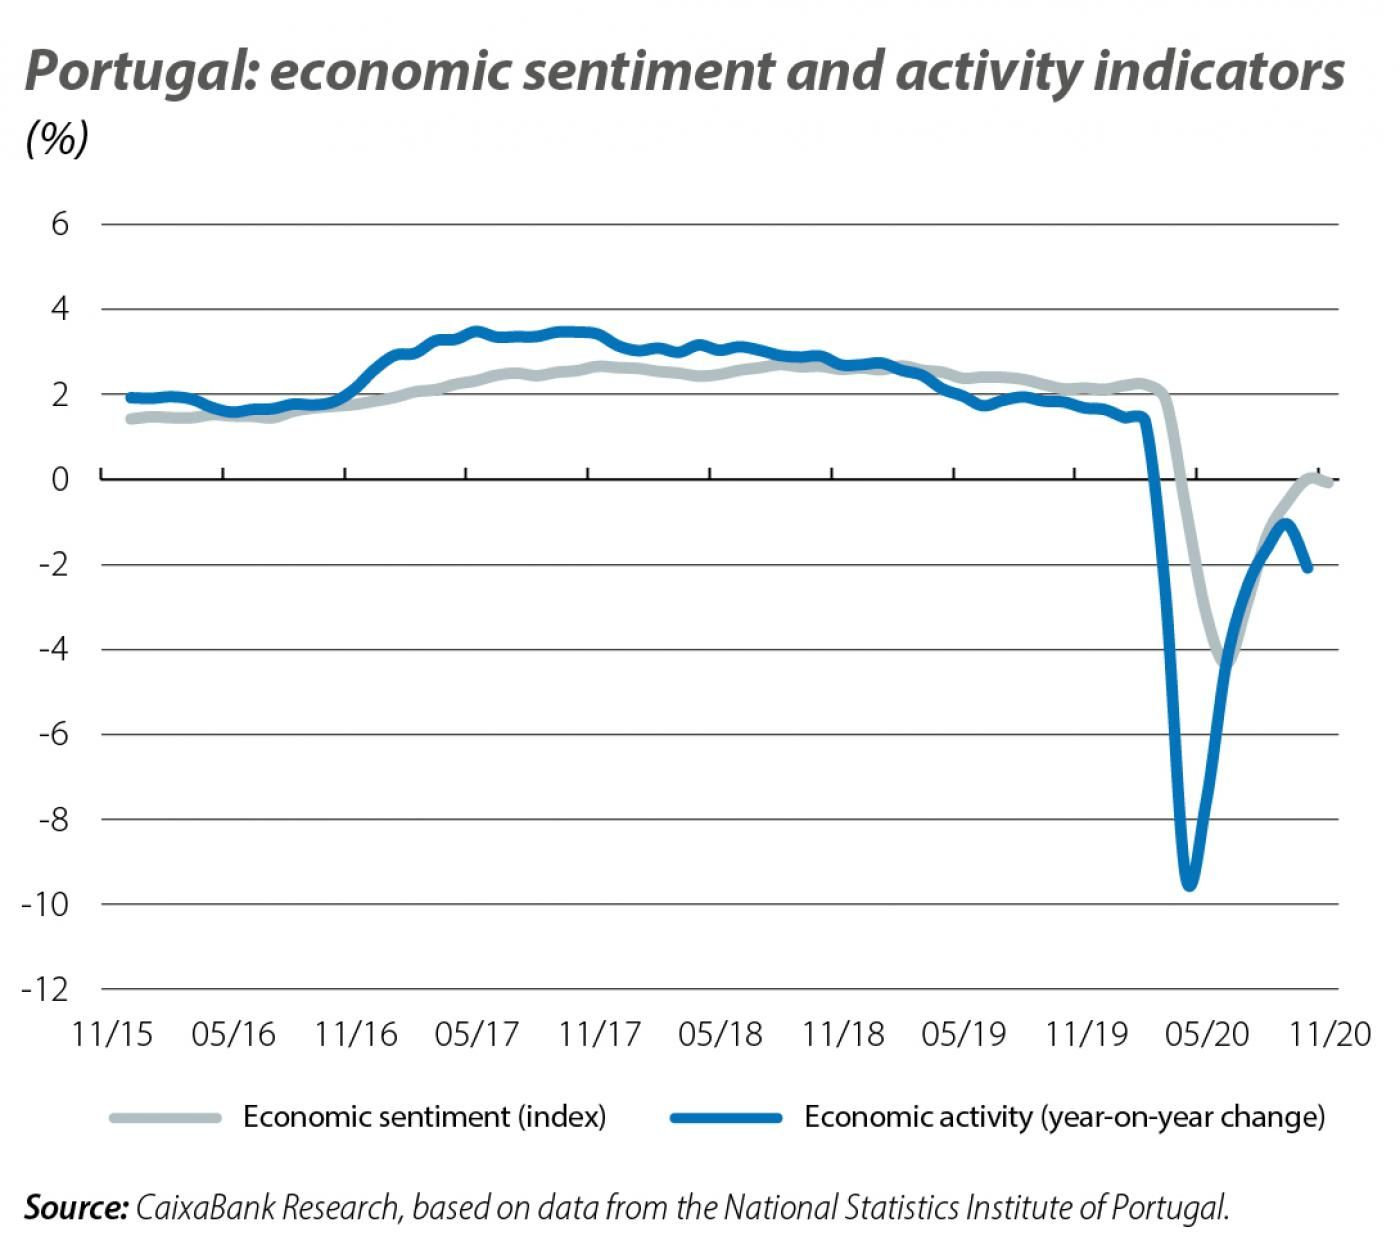 Portugal: economic sentiment and activity indicators